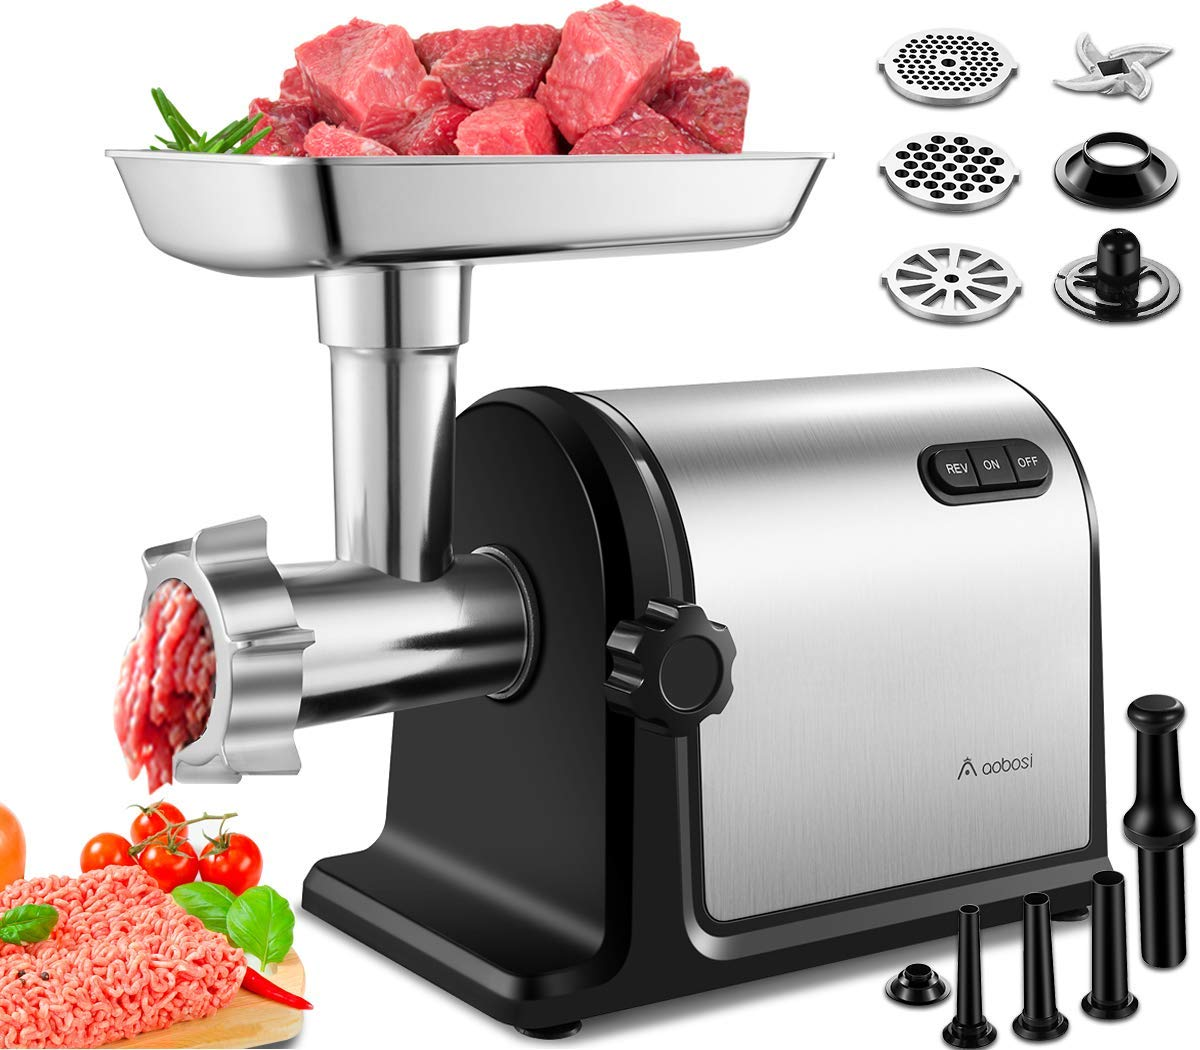 Aobosi Electric Meat Grinder 【2000W Max 】Heavy Duty Stainless Steel Meat Mincer with 3 Grinding Plates, 3 Sausage Stuffer Tubes & Kubbe Attachments,Easy One-Button Control,ETL Approved,Commercial Use by AAOBOSI